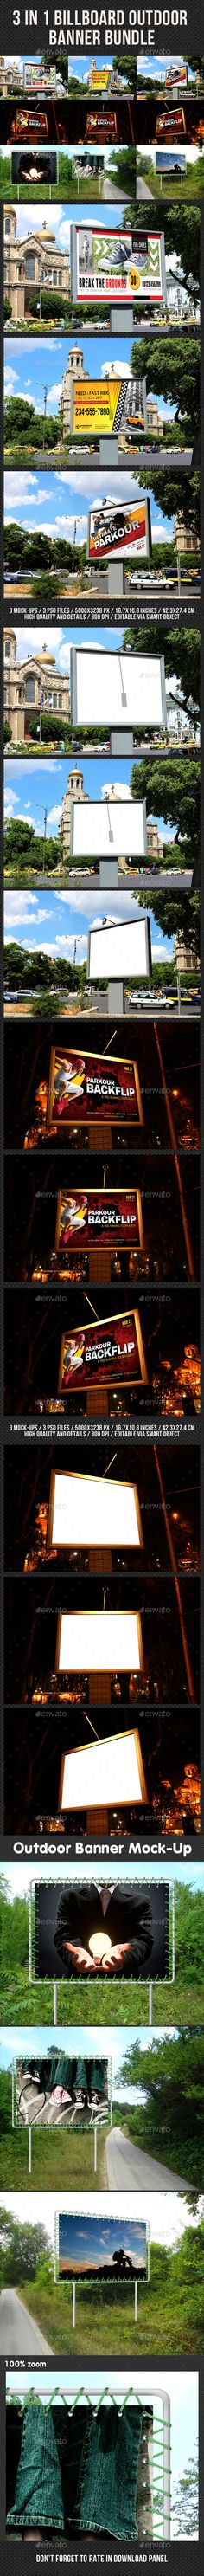 3 in 1 Billboard Banner Mock-Up Bundle - Signage Print